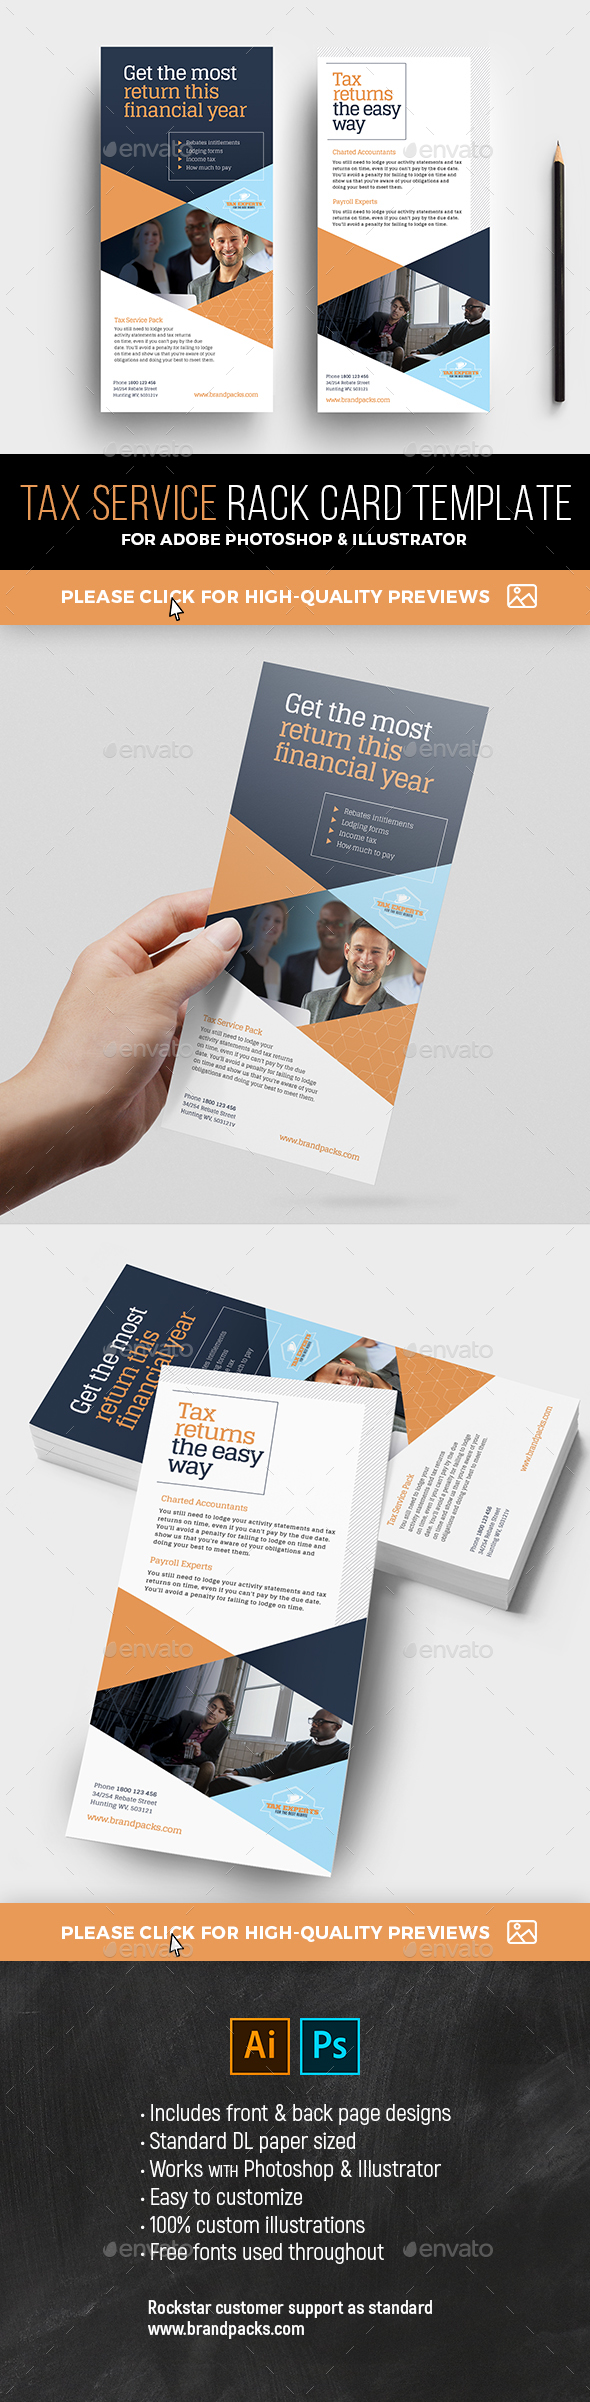 GraphicRiver DL Tax Service Rack Card Template 21109737